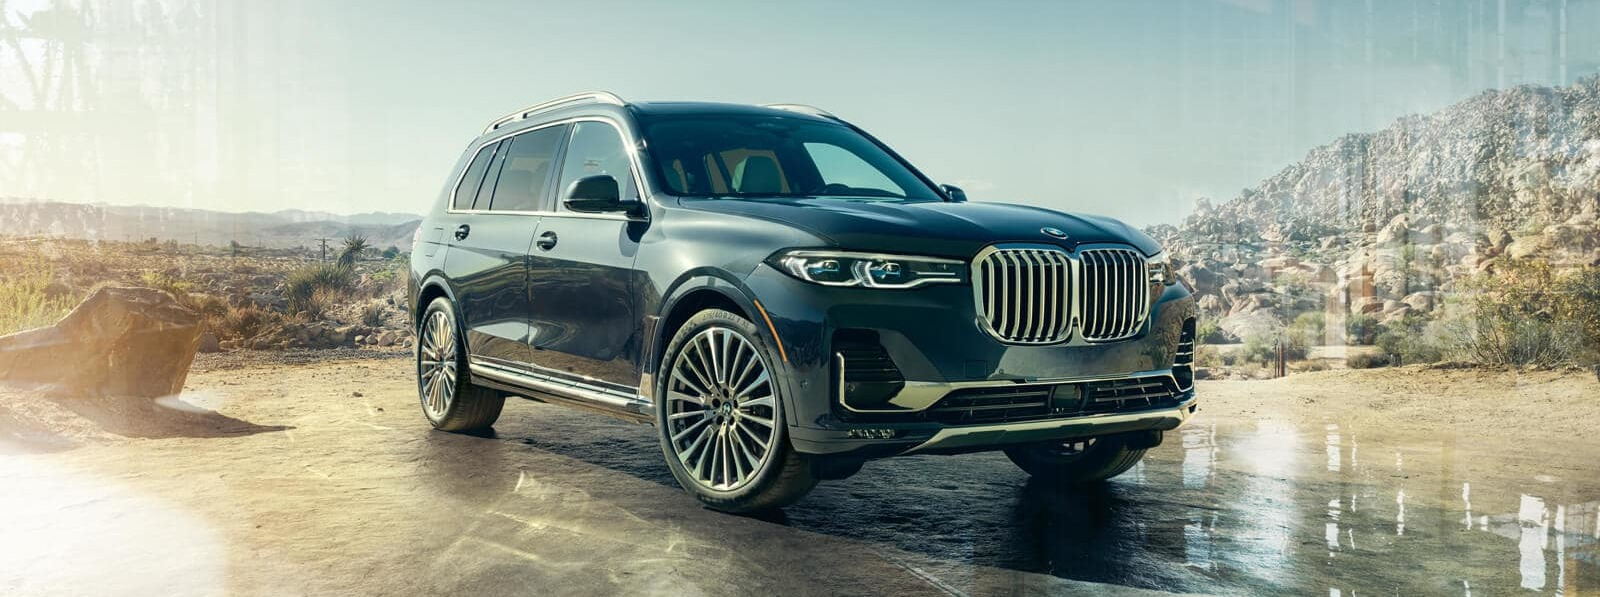 2020 BMW X7 Key Features near Dallas, TX